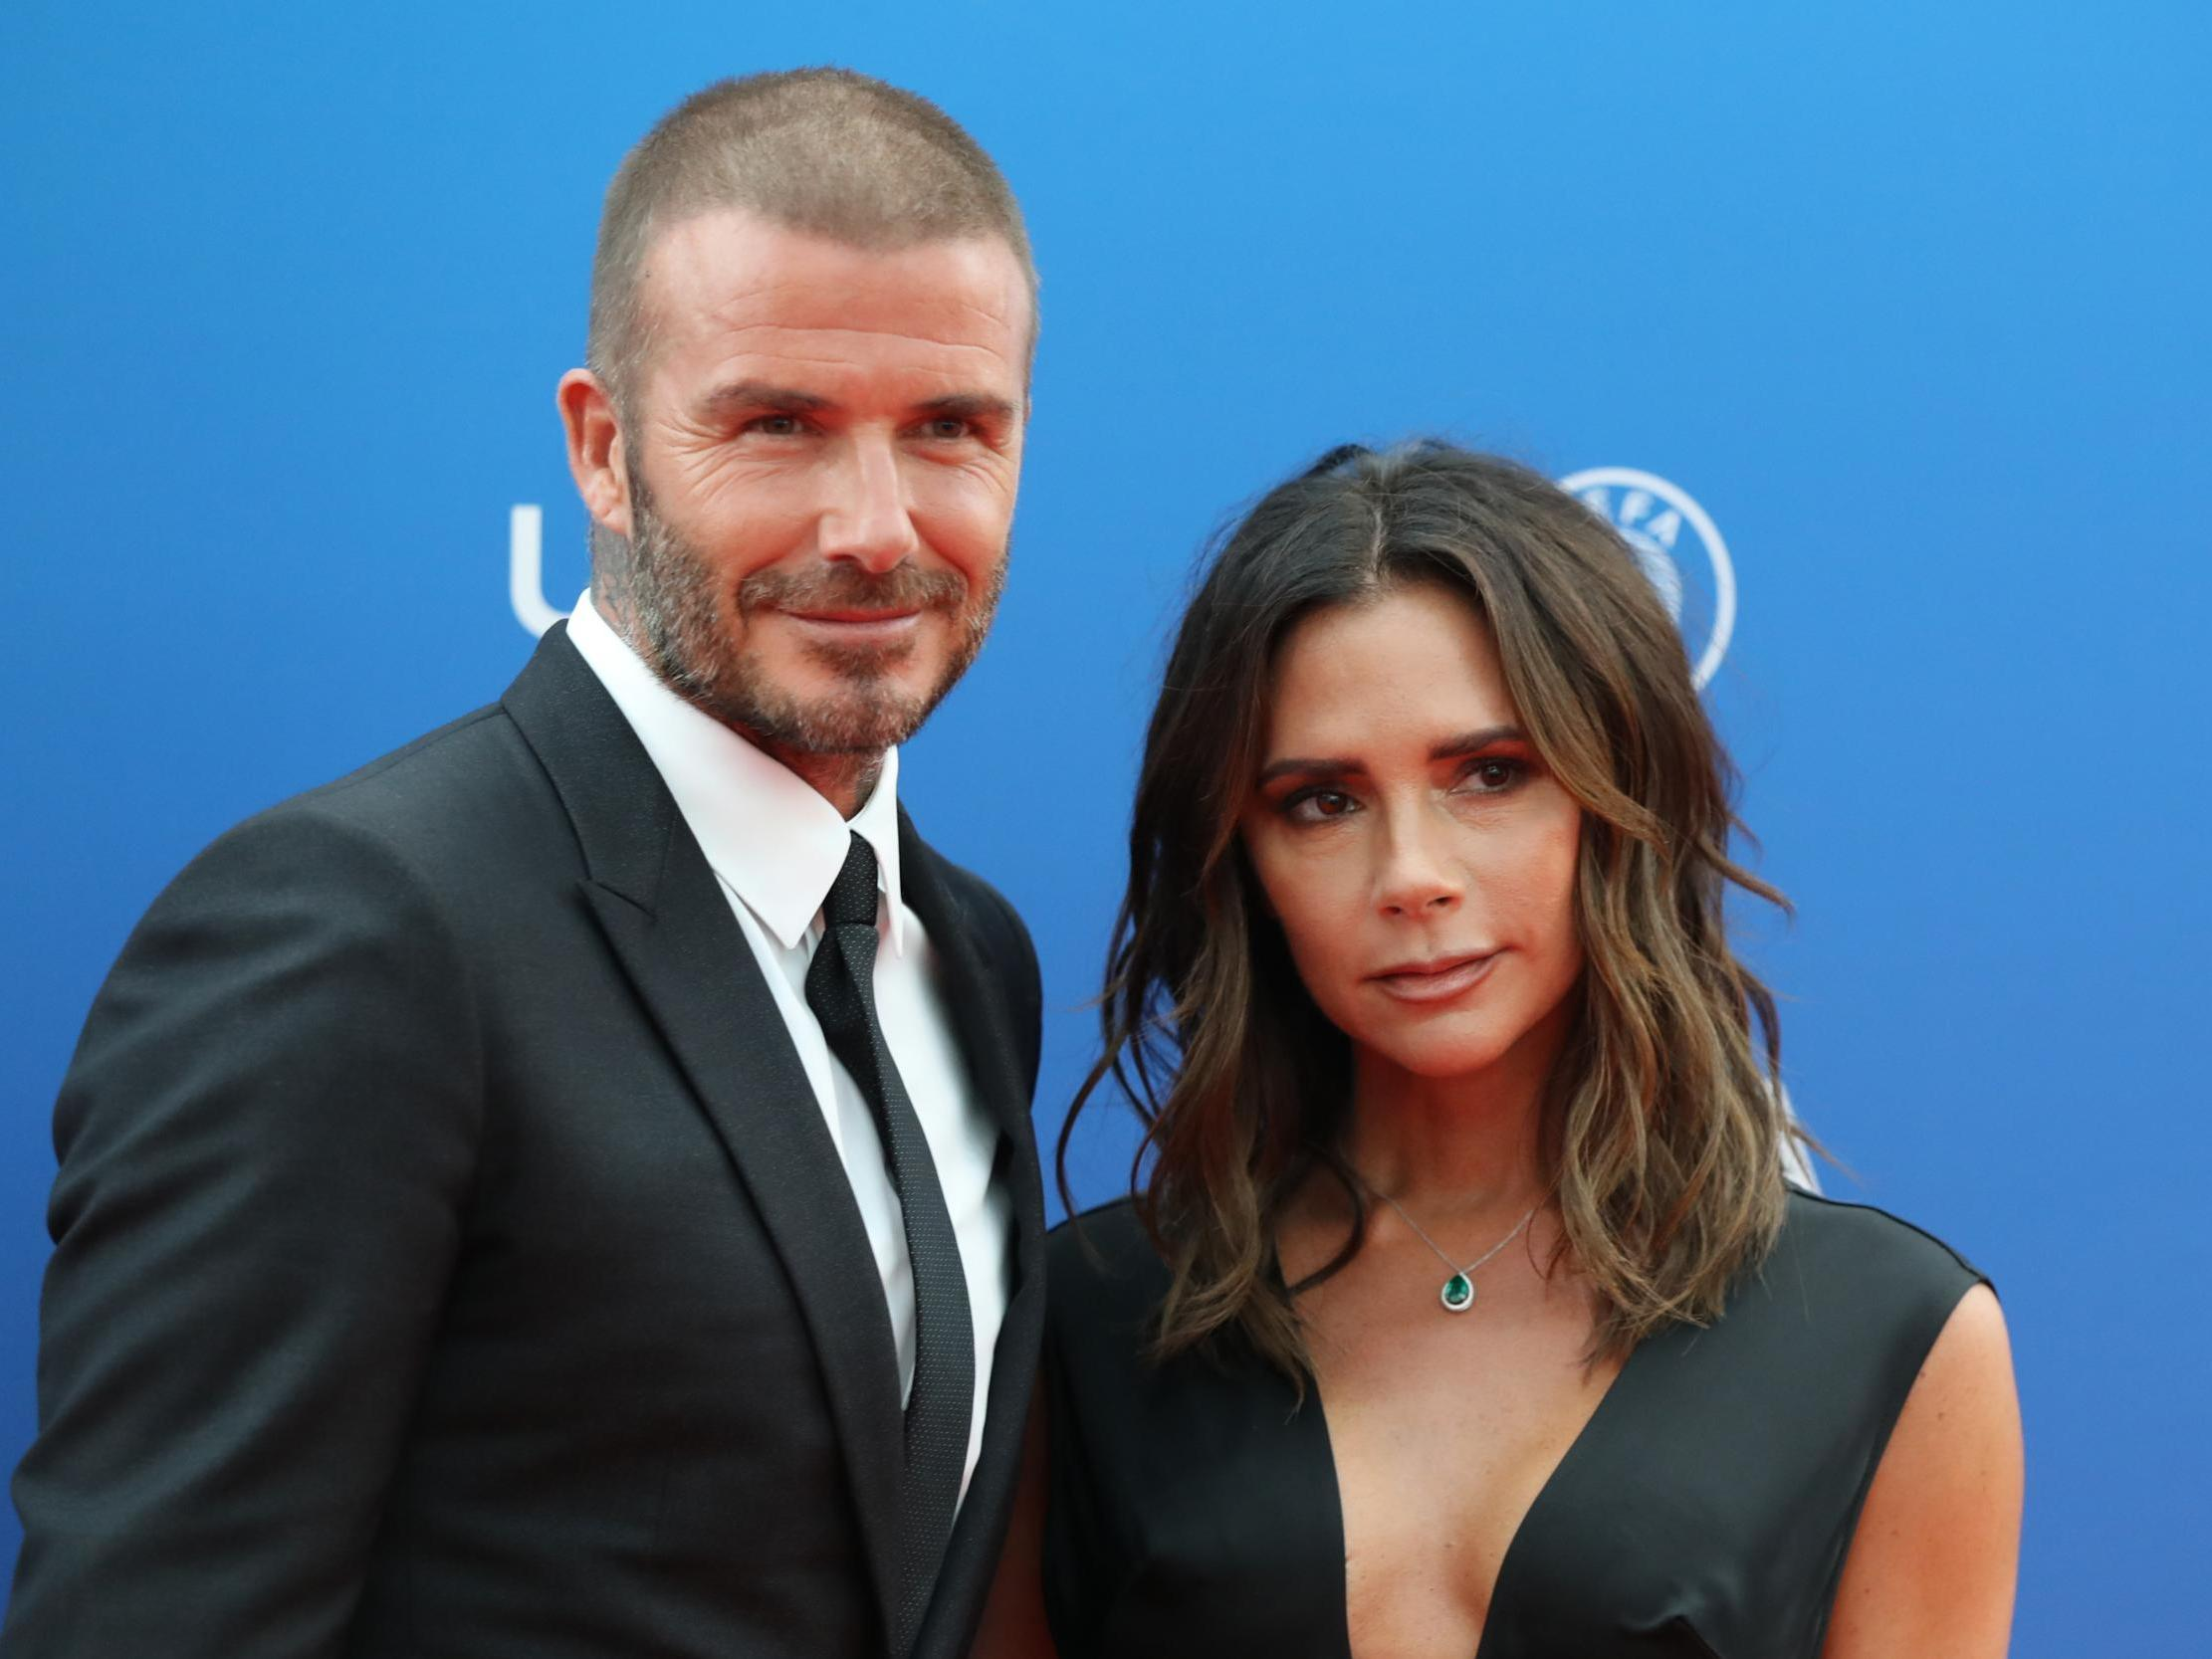 Victoria Beckham reveals the secret to her 20-year marriage to David